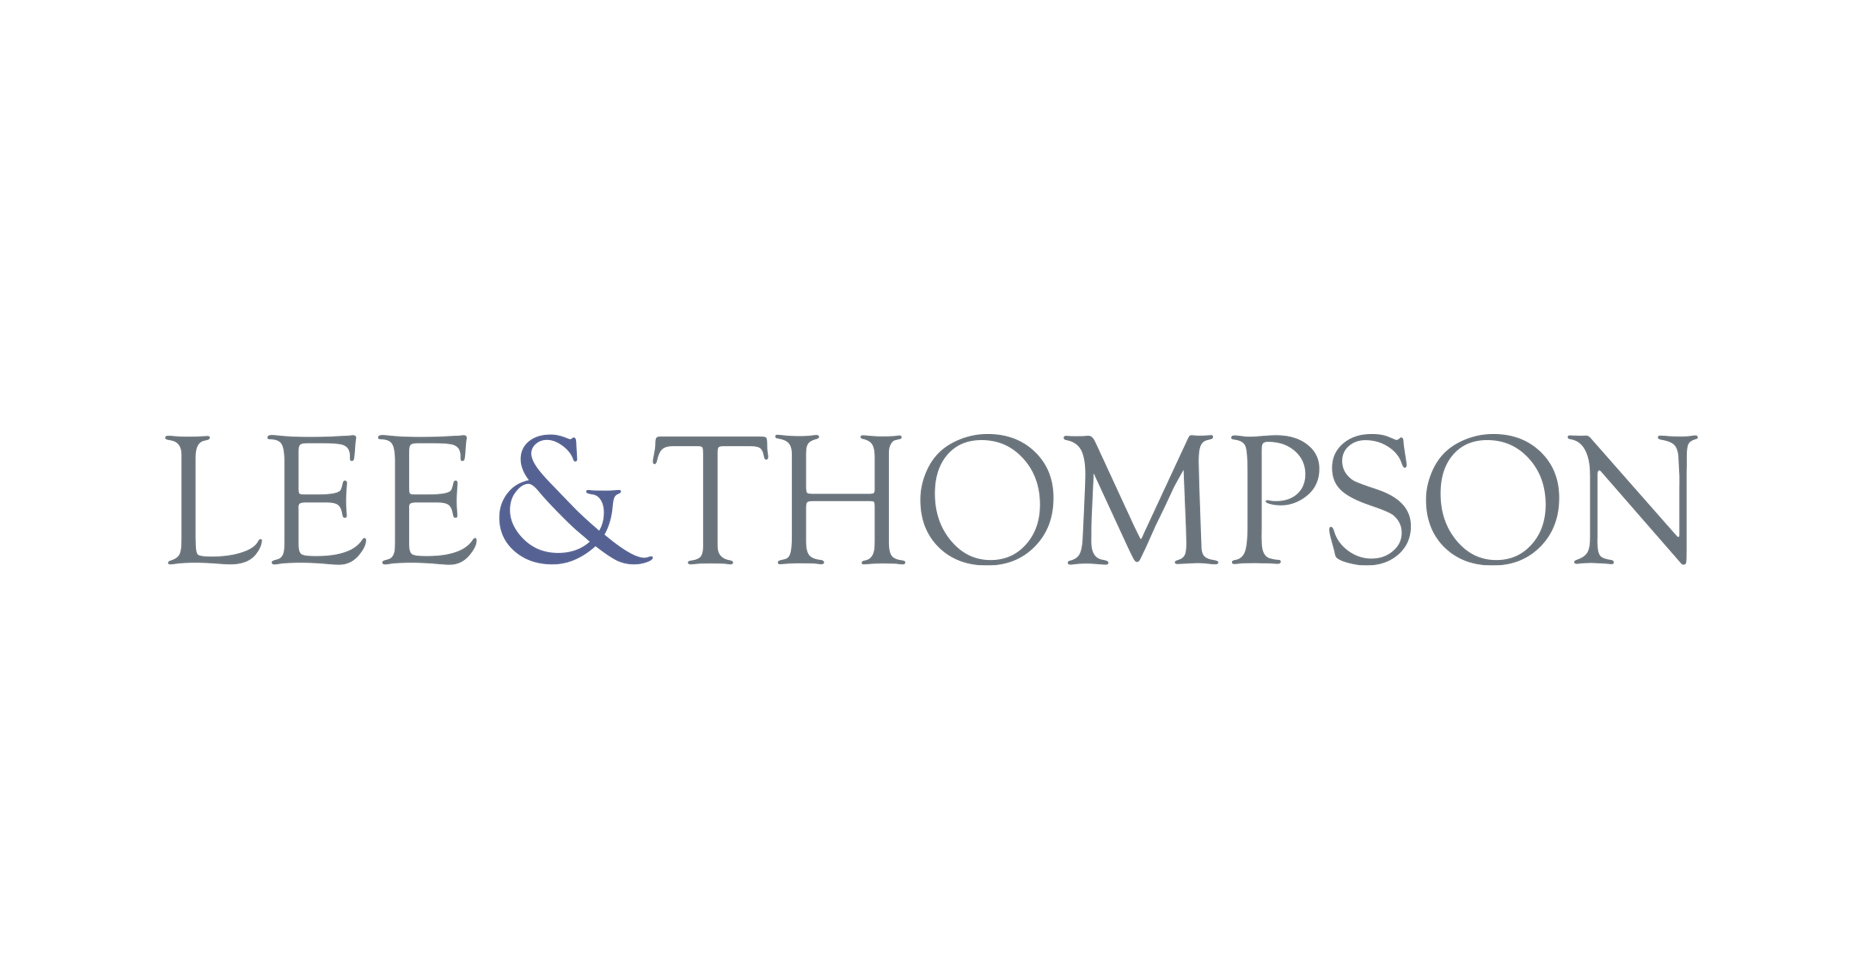 A logo that has the words Lee & Thompson written in a serif typeface